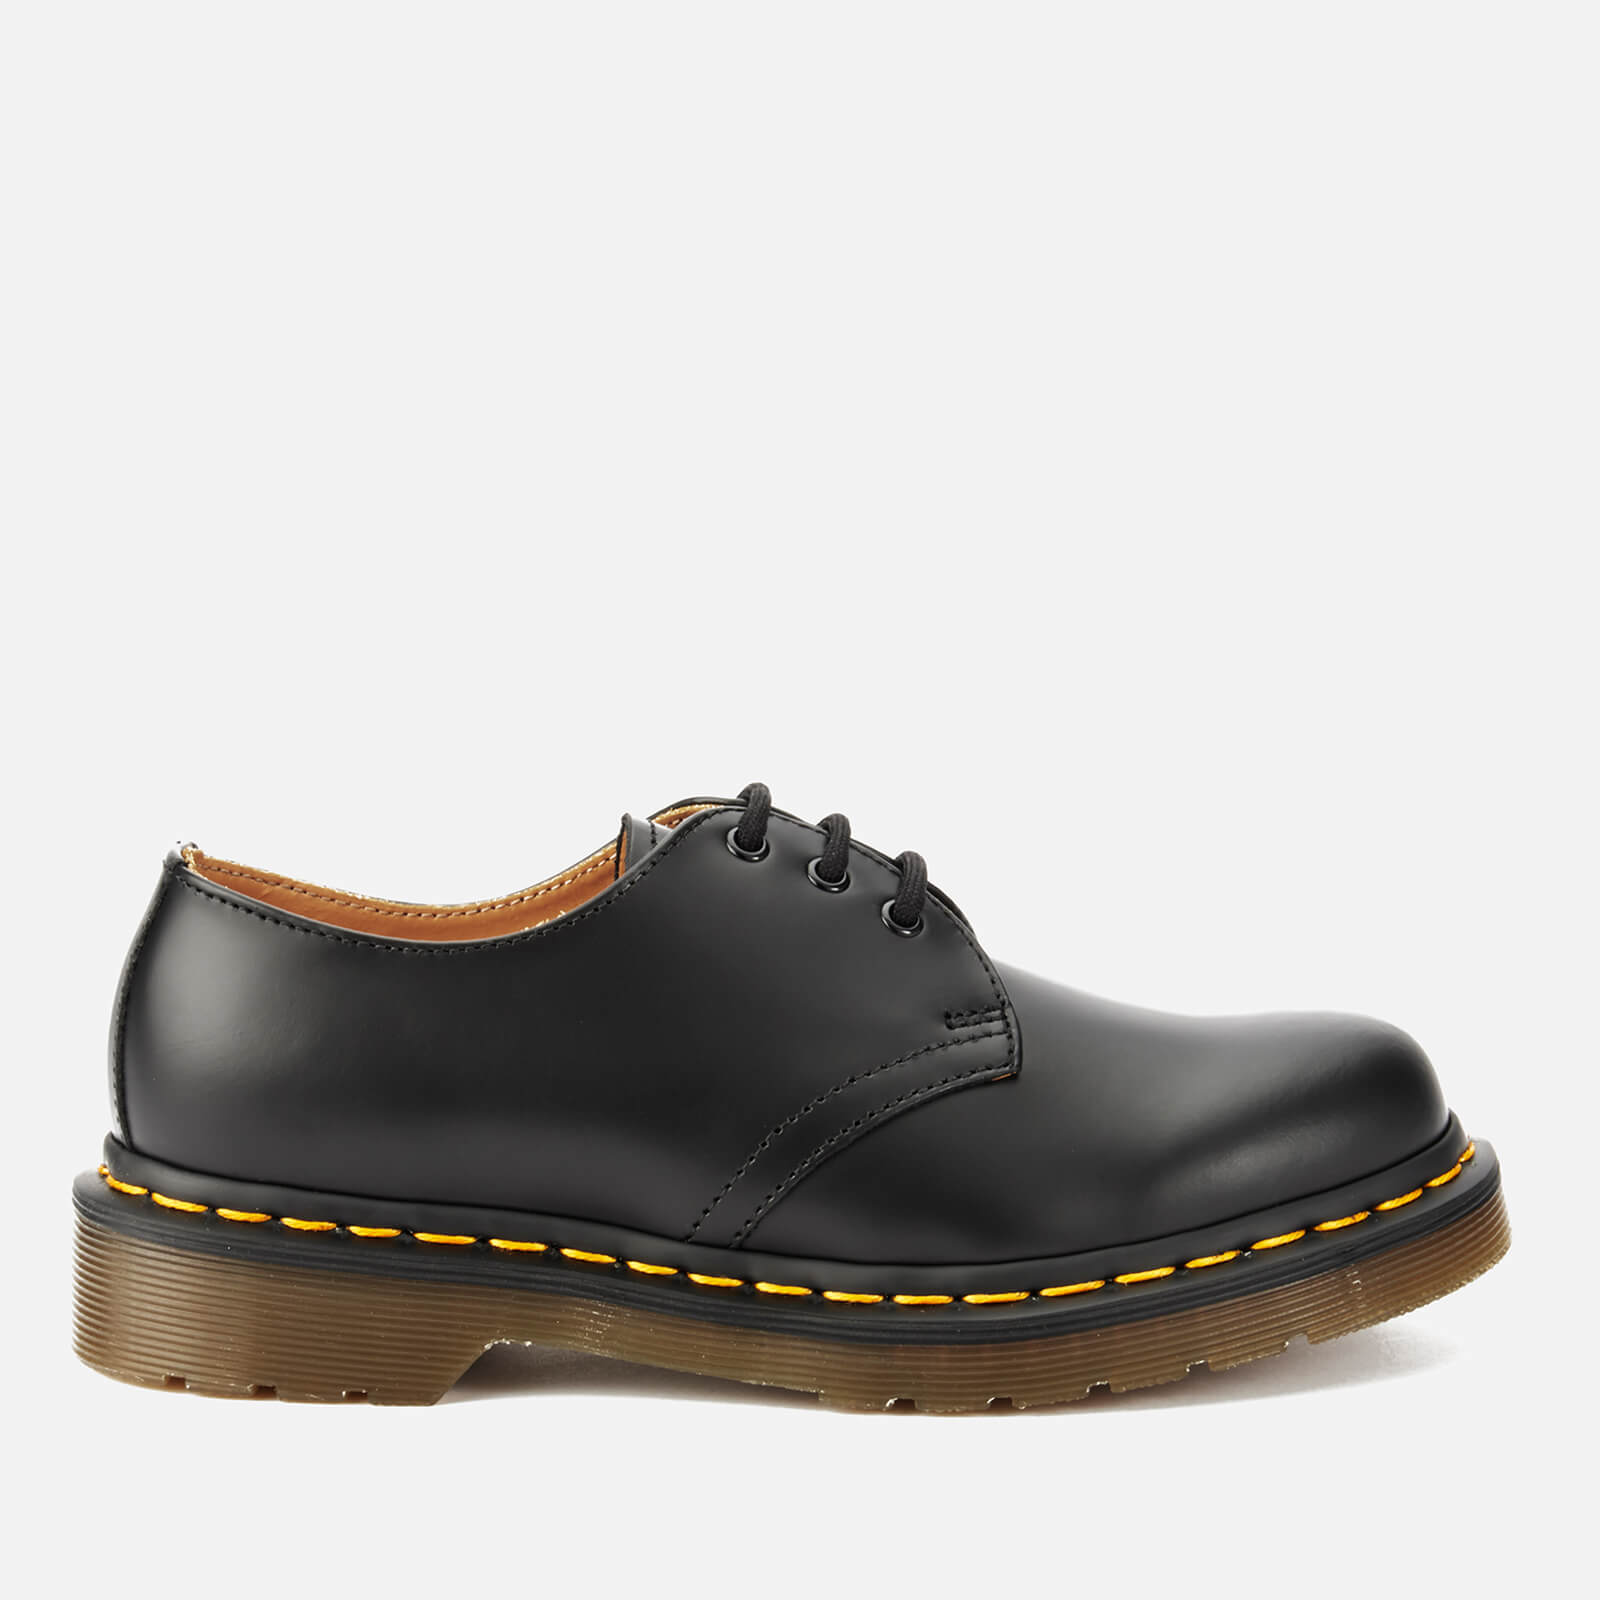 Dr. Martens 1461 Smooth Leather 3-Eye Shoes - Black - UK 8 from Dr. Martens